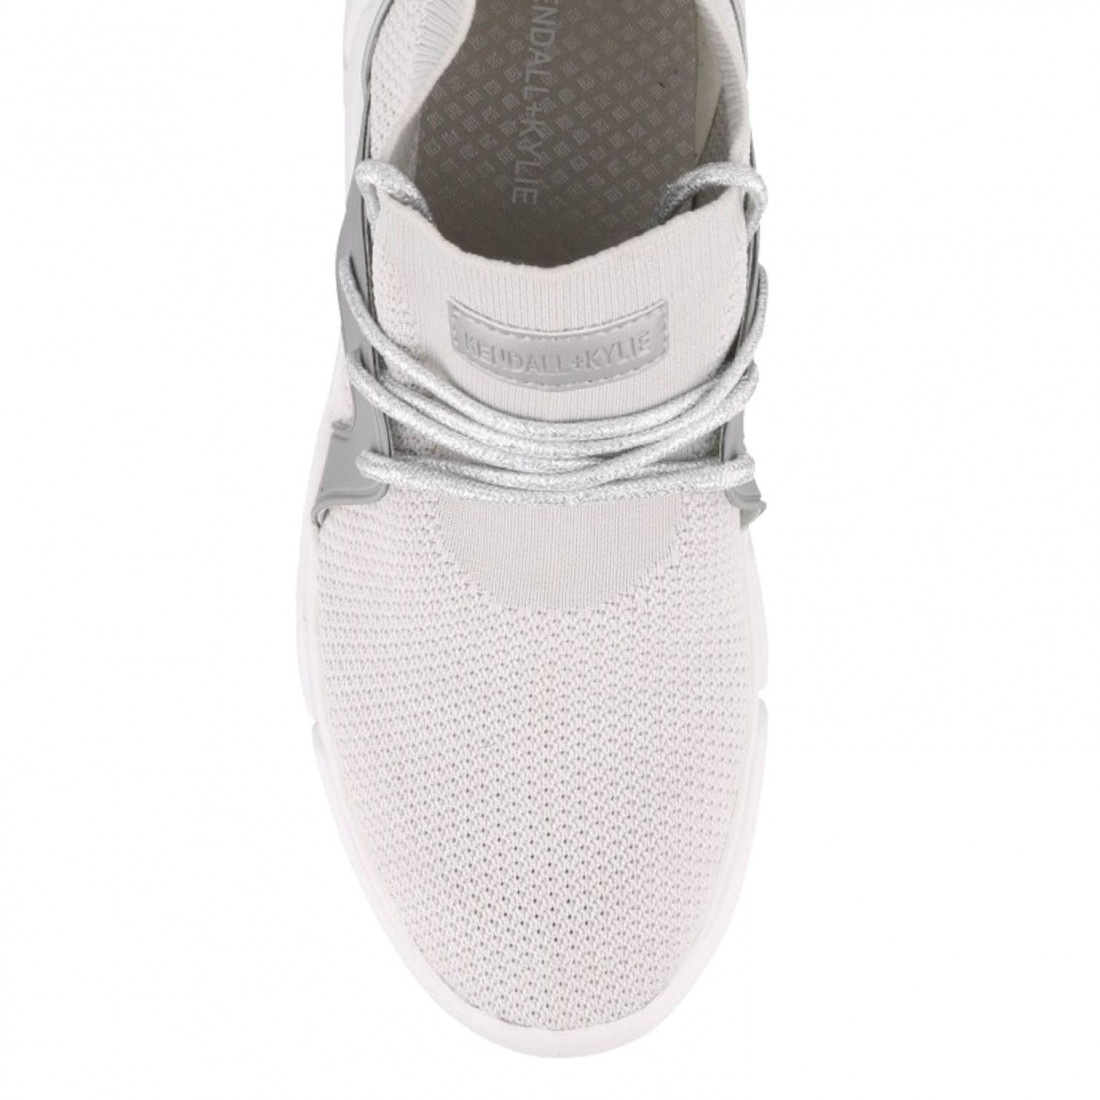 sneakers woman kendall kylie kkconquergrmfb 4873